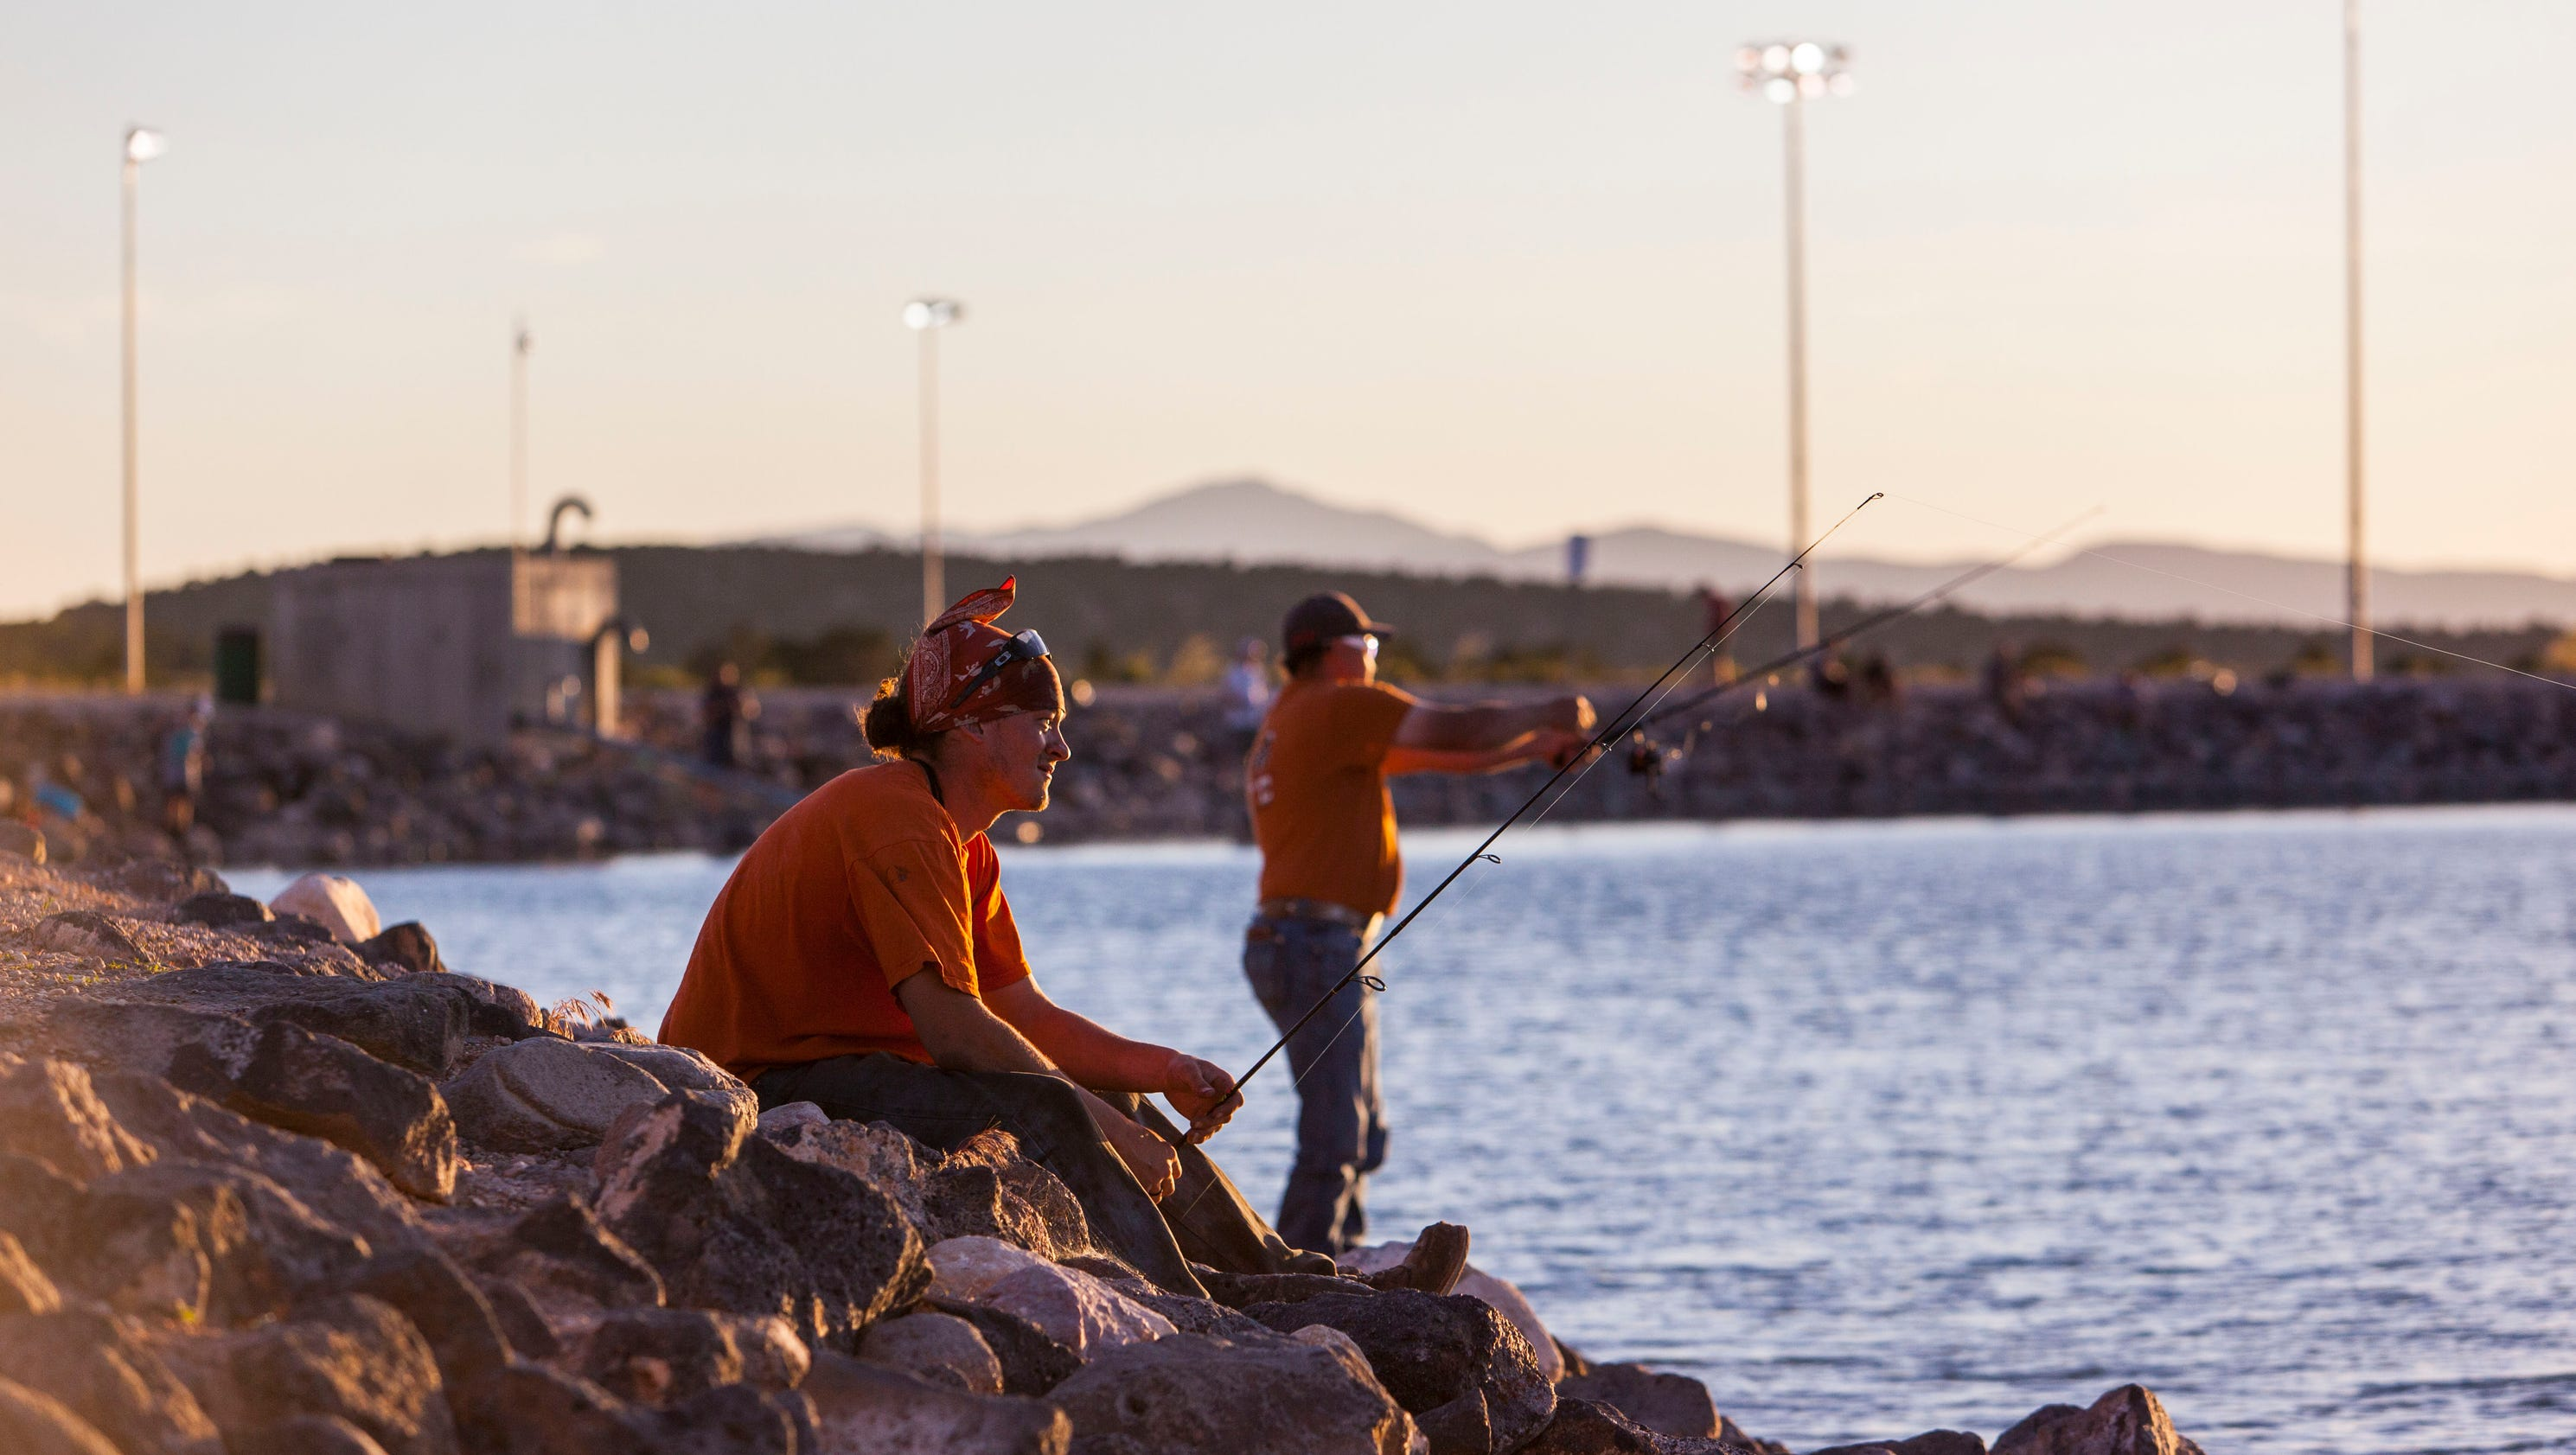 free fishing day in utah on saturday